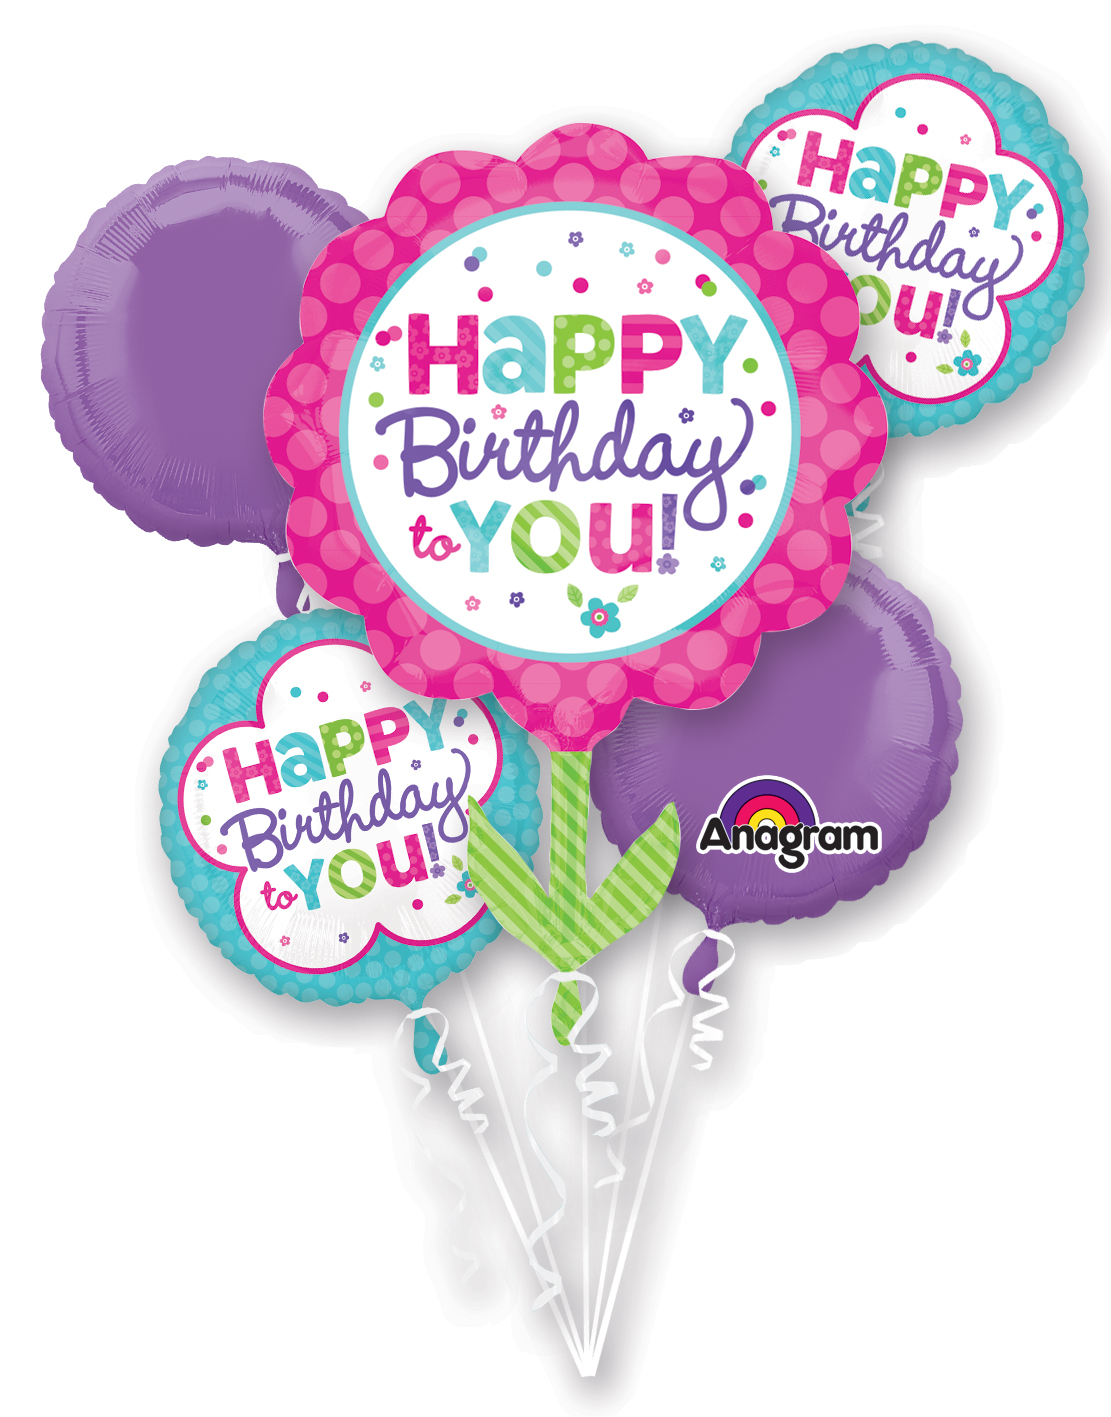 Bouquet Pink & Teal Birthday Balloon Packaged